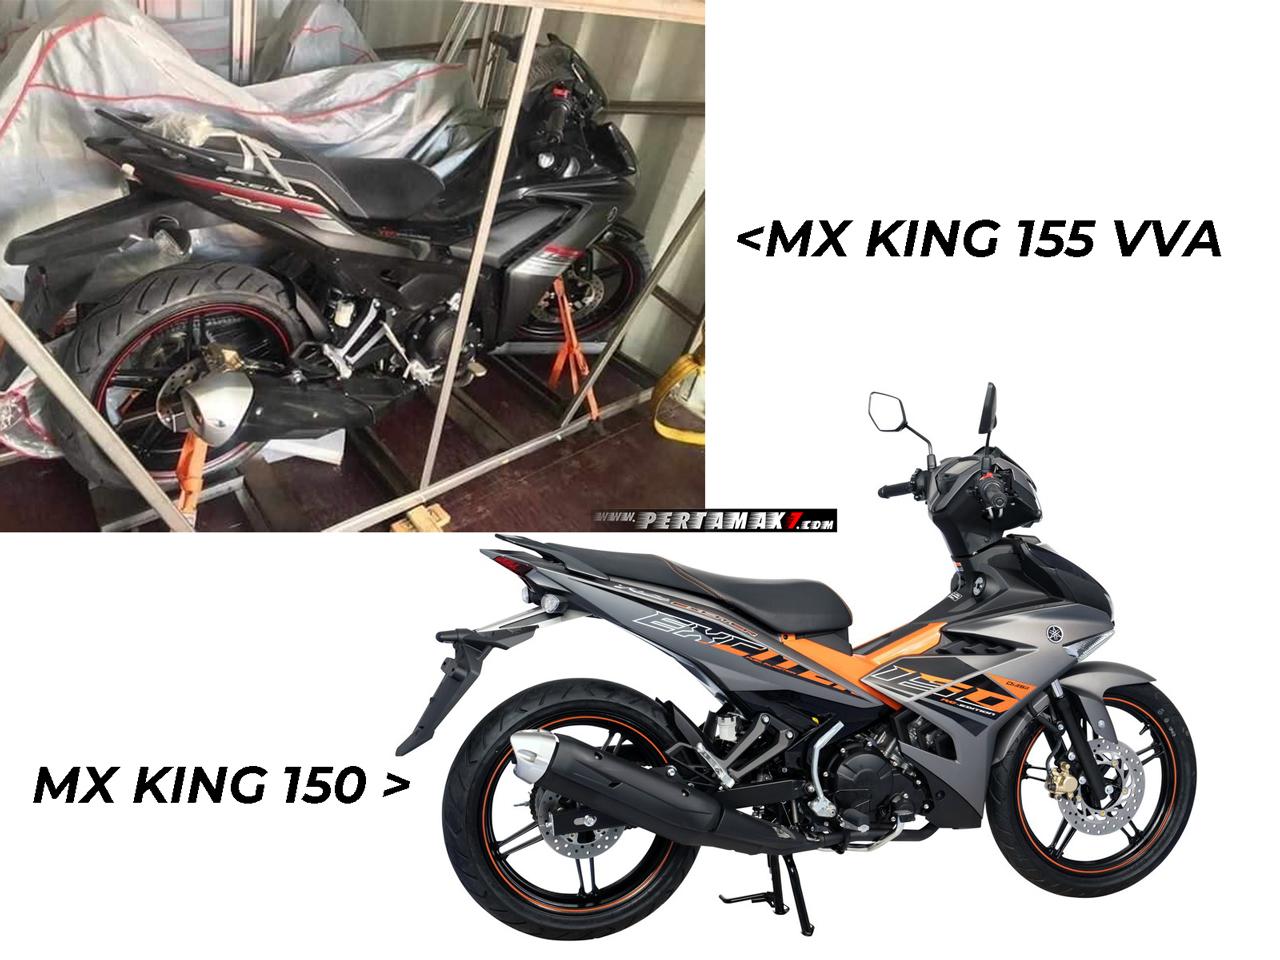 Yamaha MX KING 155 VVA Datang VS MX KING 150